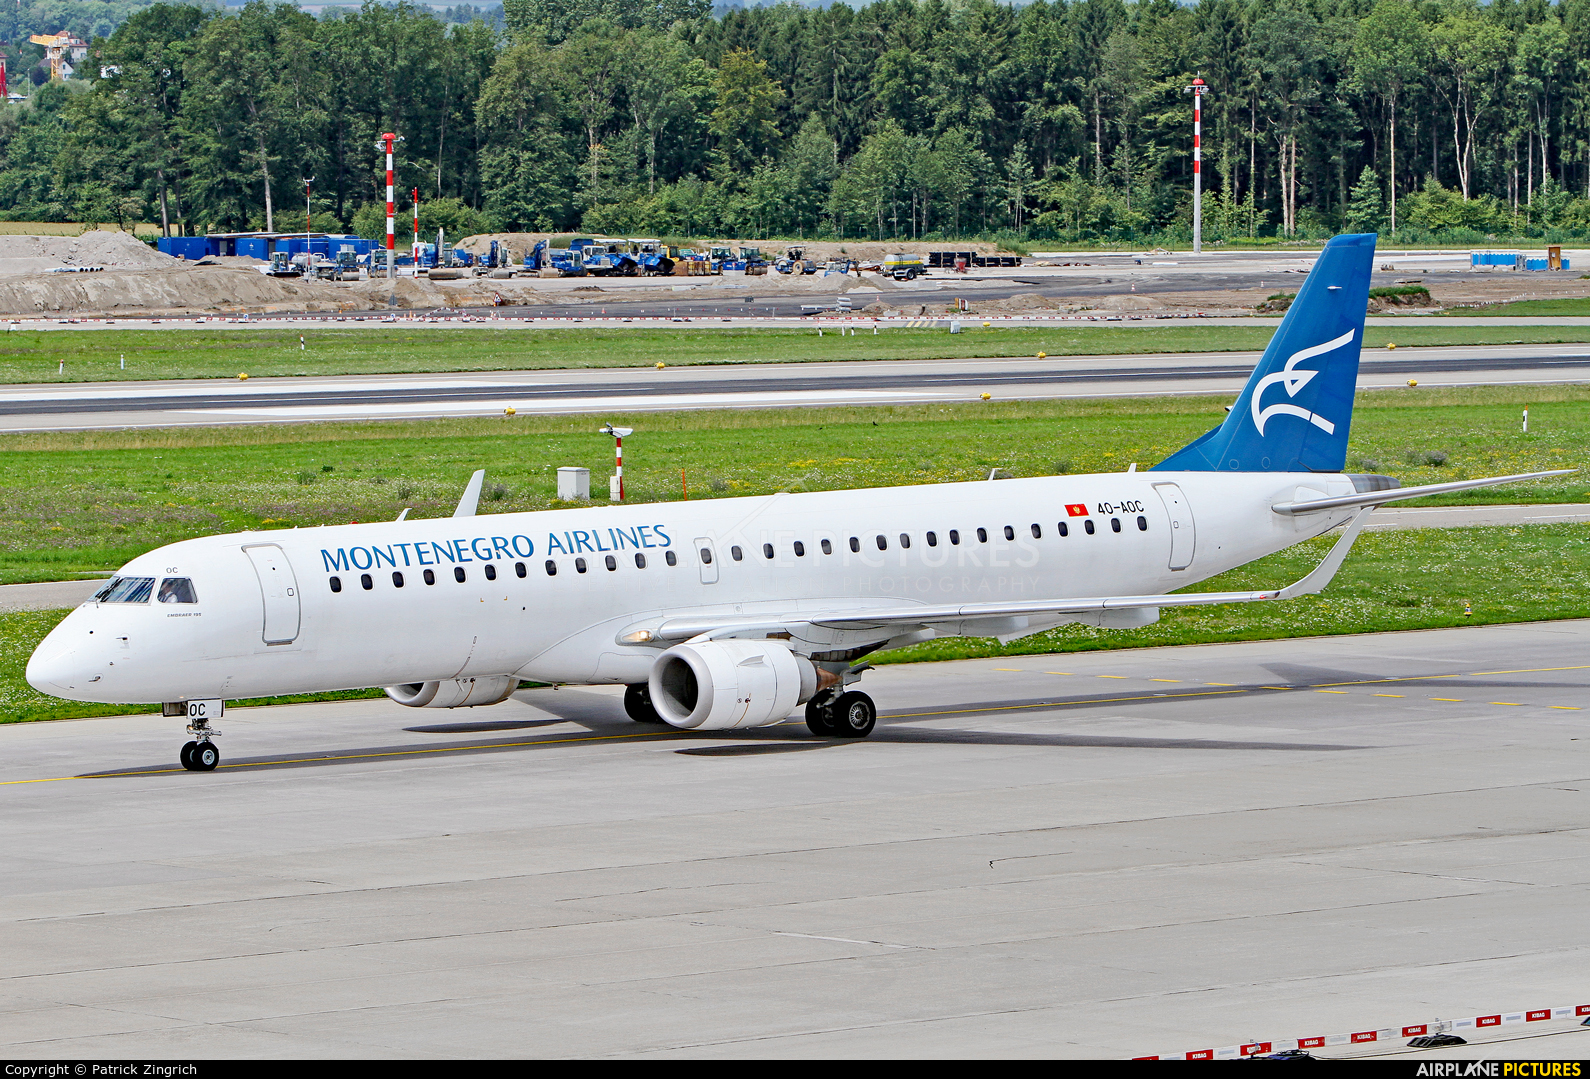 Montenegro Airlines 4O-AOC aircraft at Zurich